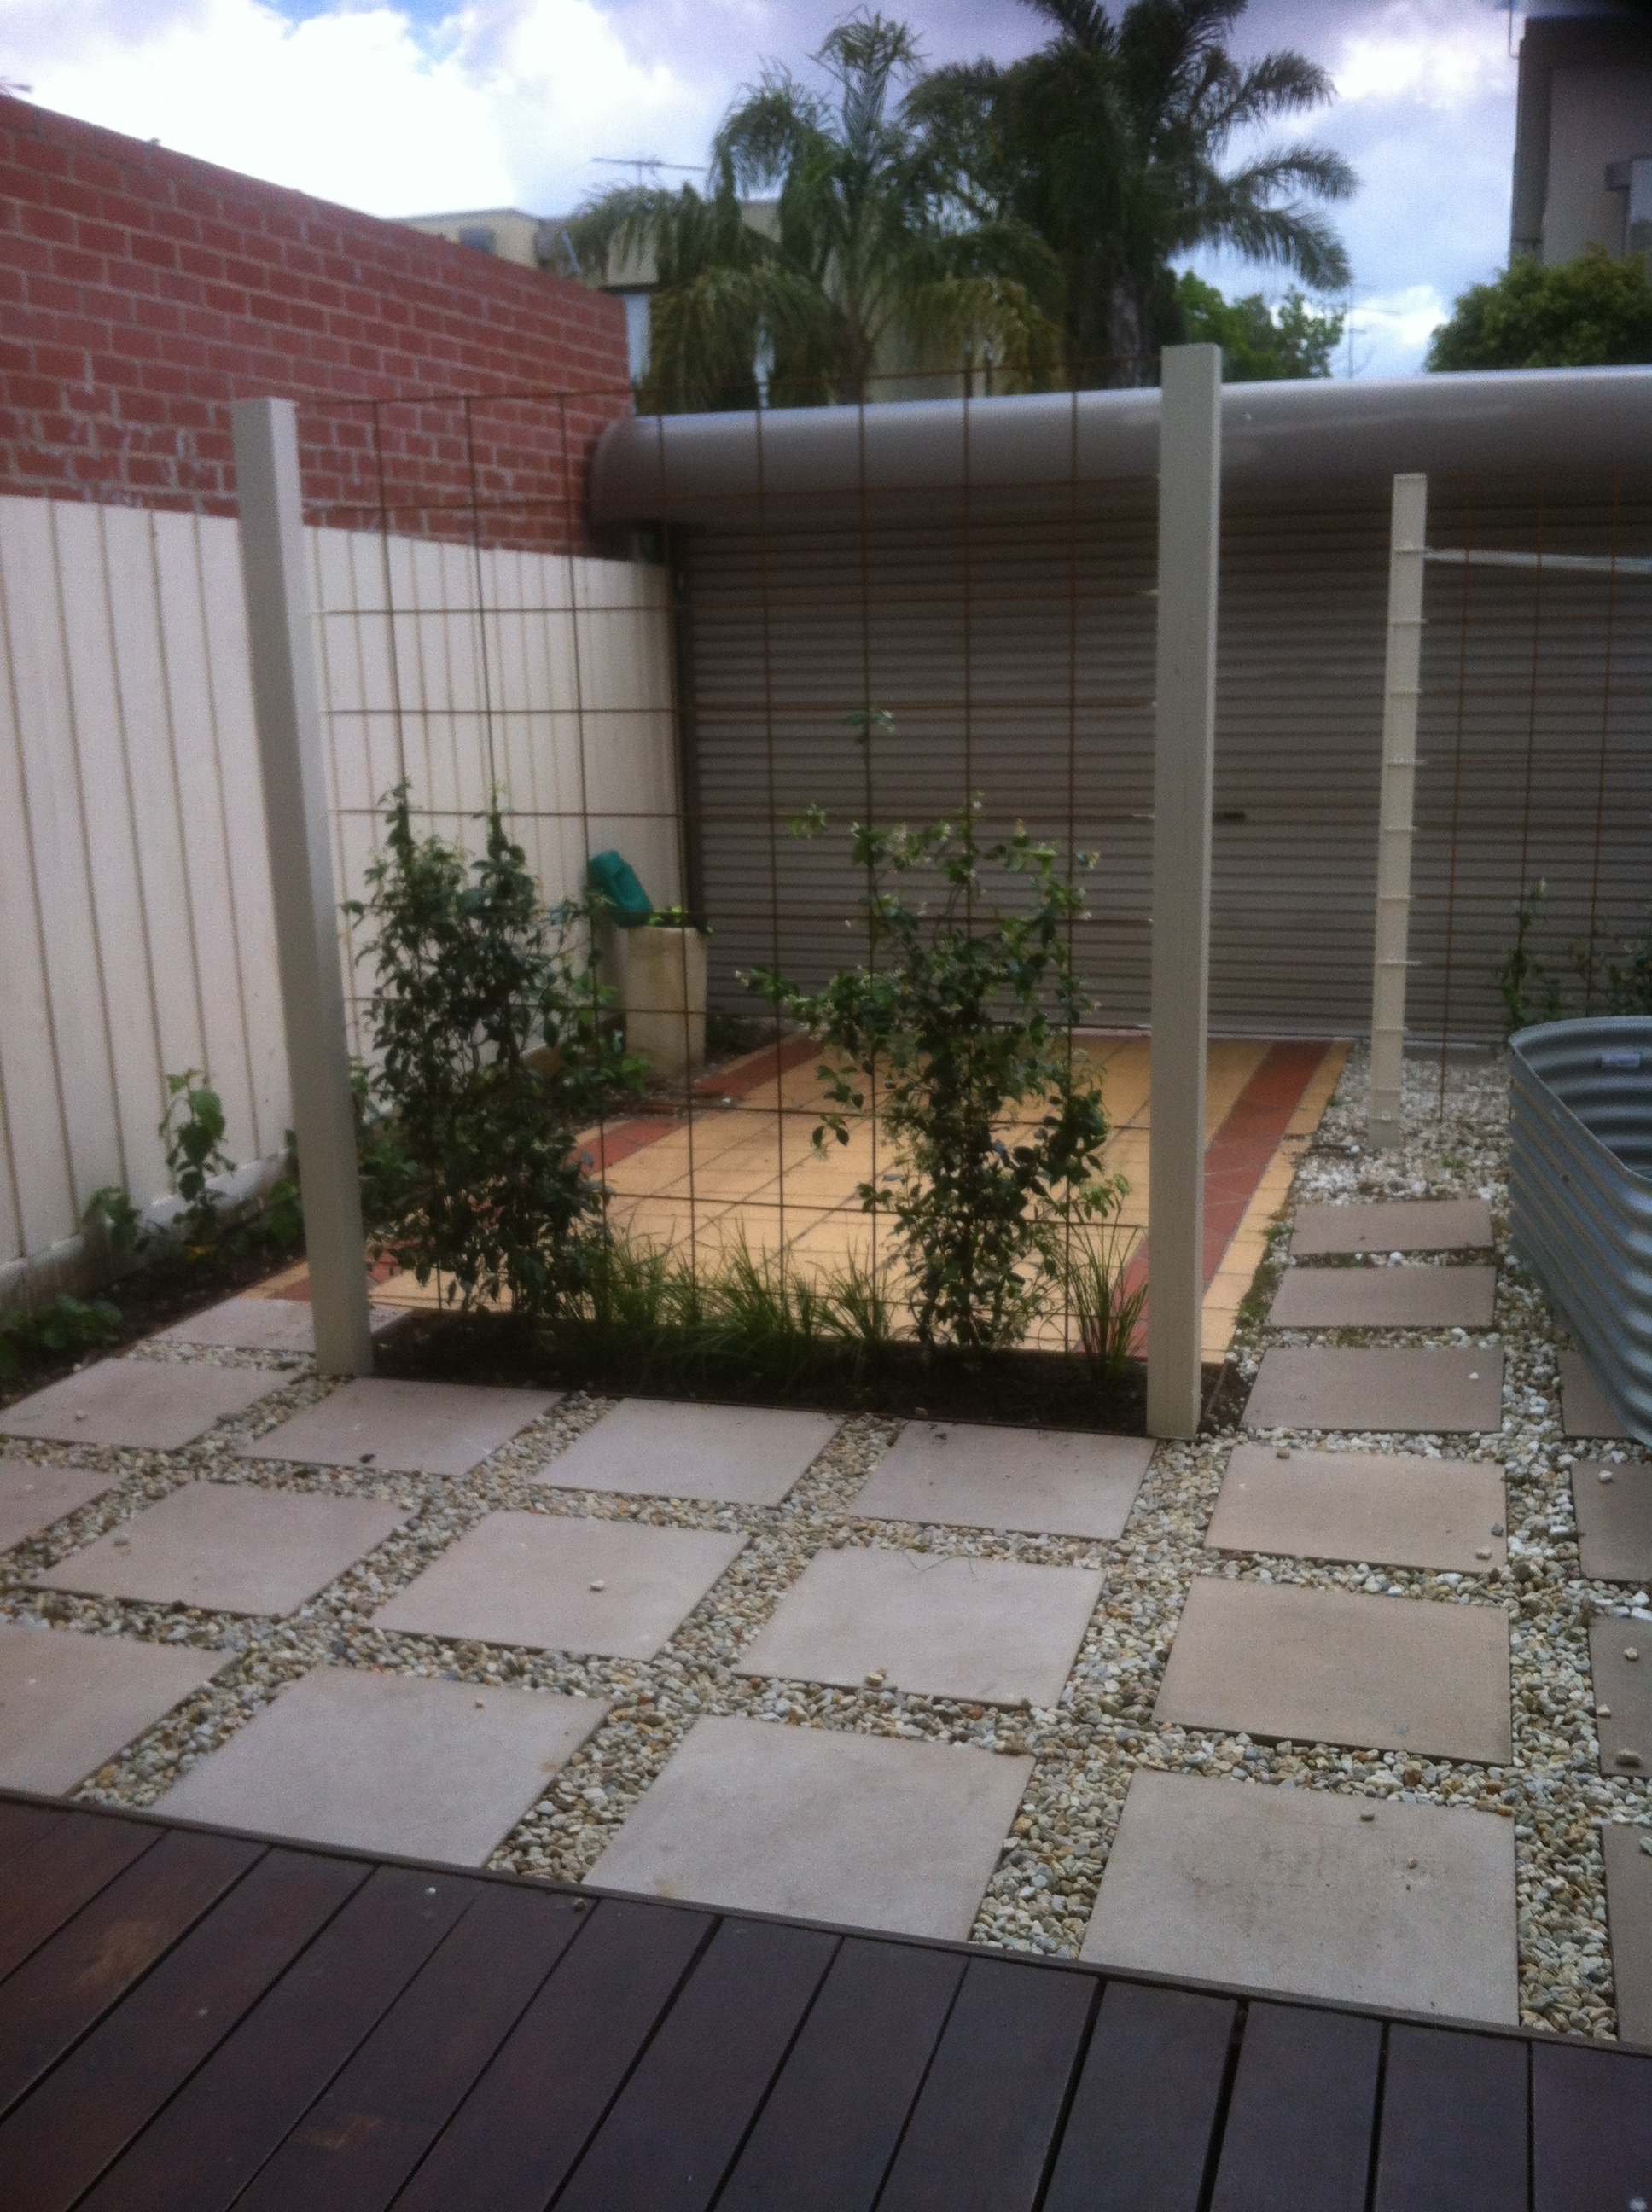 Courtyard In Port Melbourne Small Spaces Garden Design